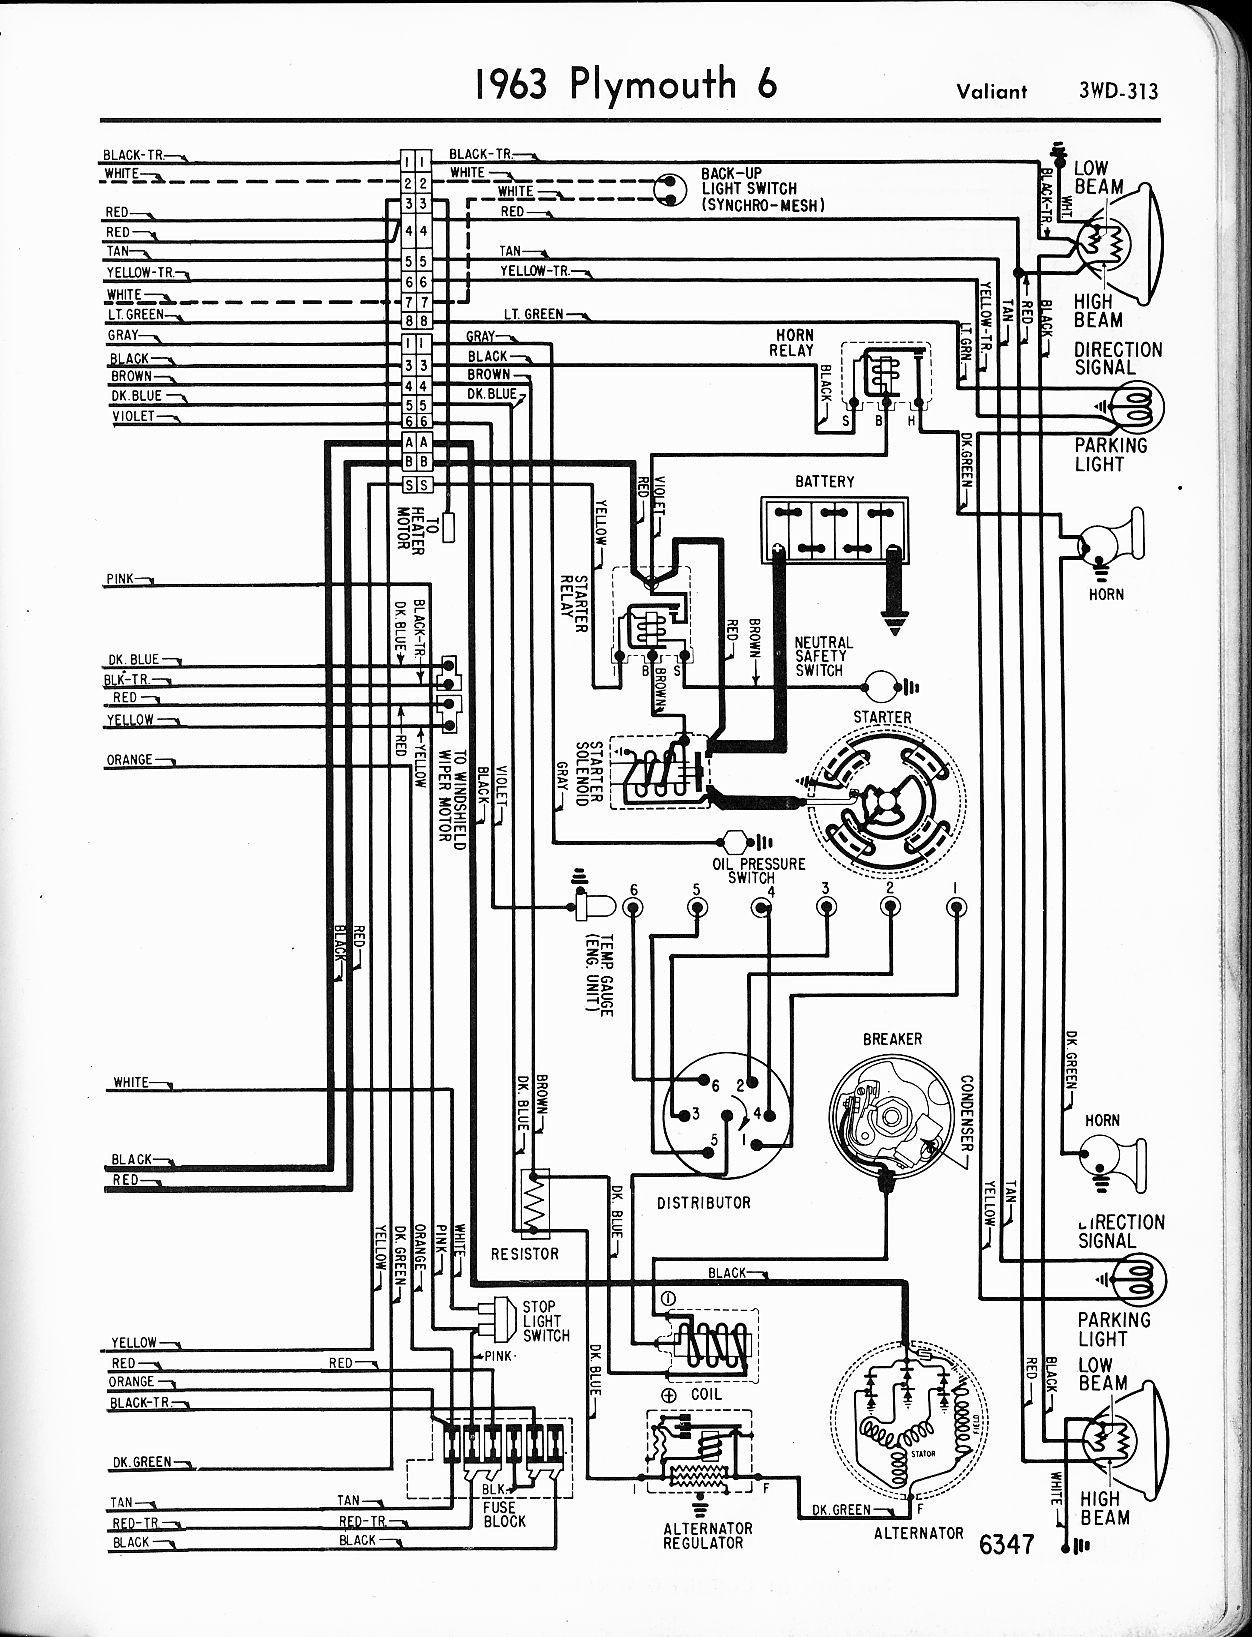 New House Wiring Diagram South Africa Diagram Diagramsample Diagramtemplate Check More At Https Morningculture Co House House Wiring Diagram Unique Houses